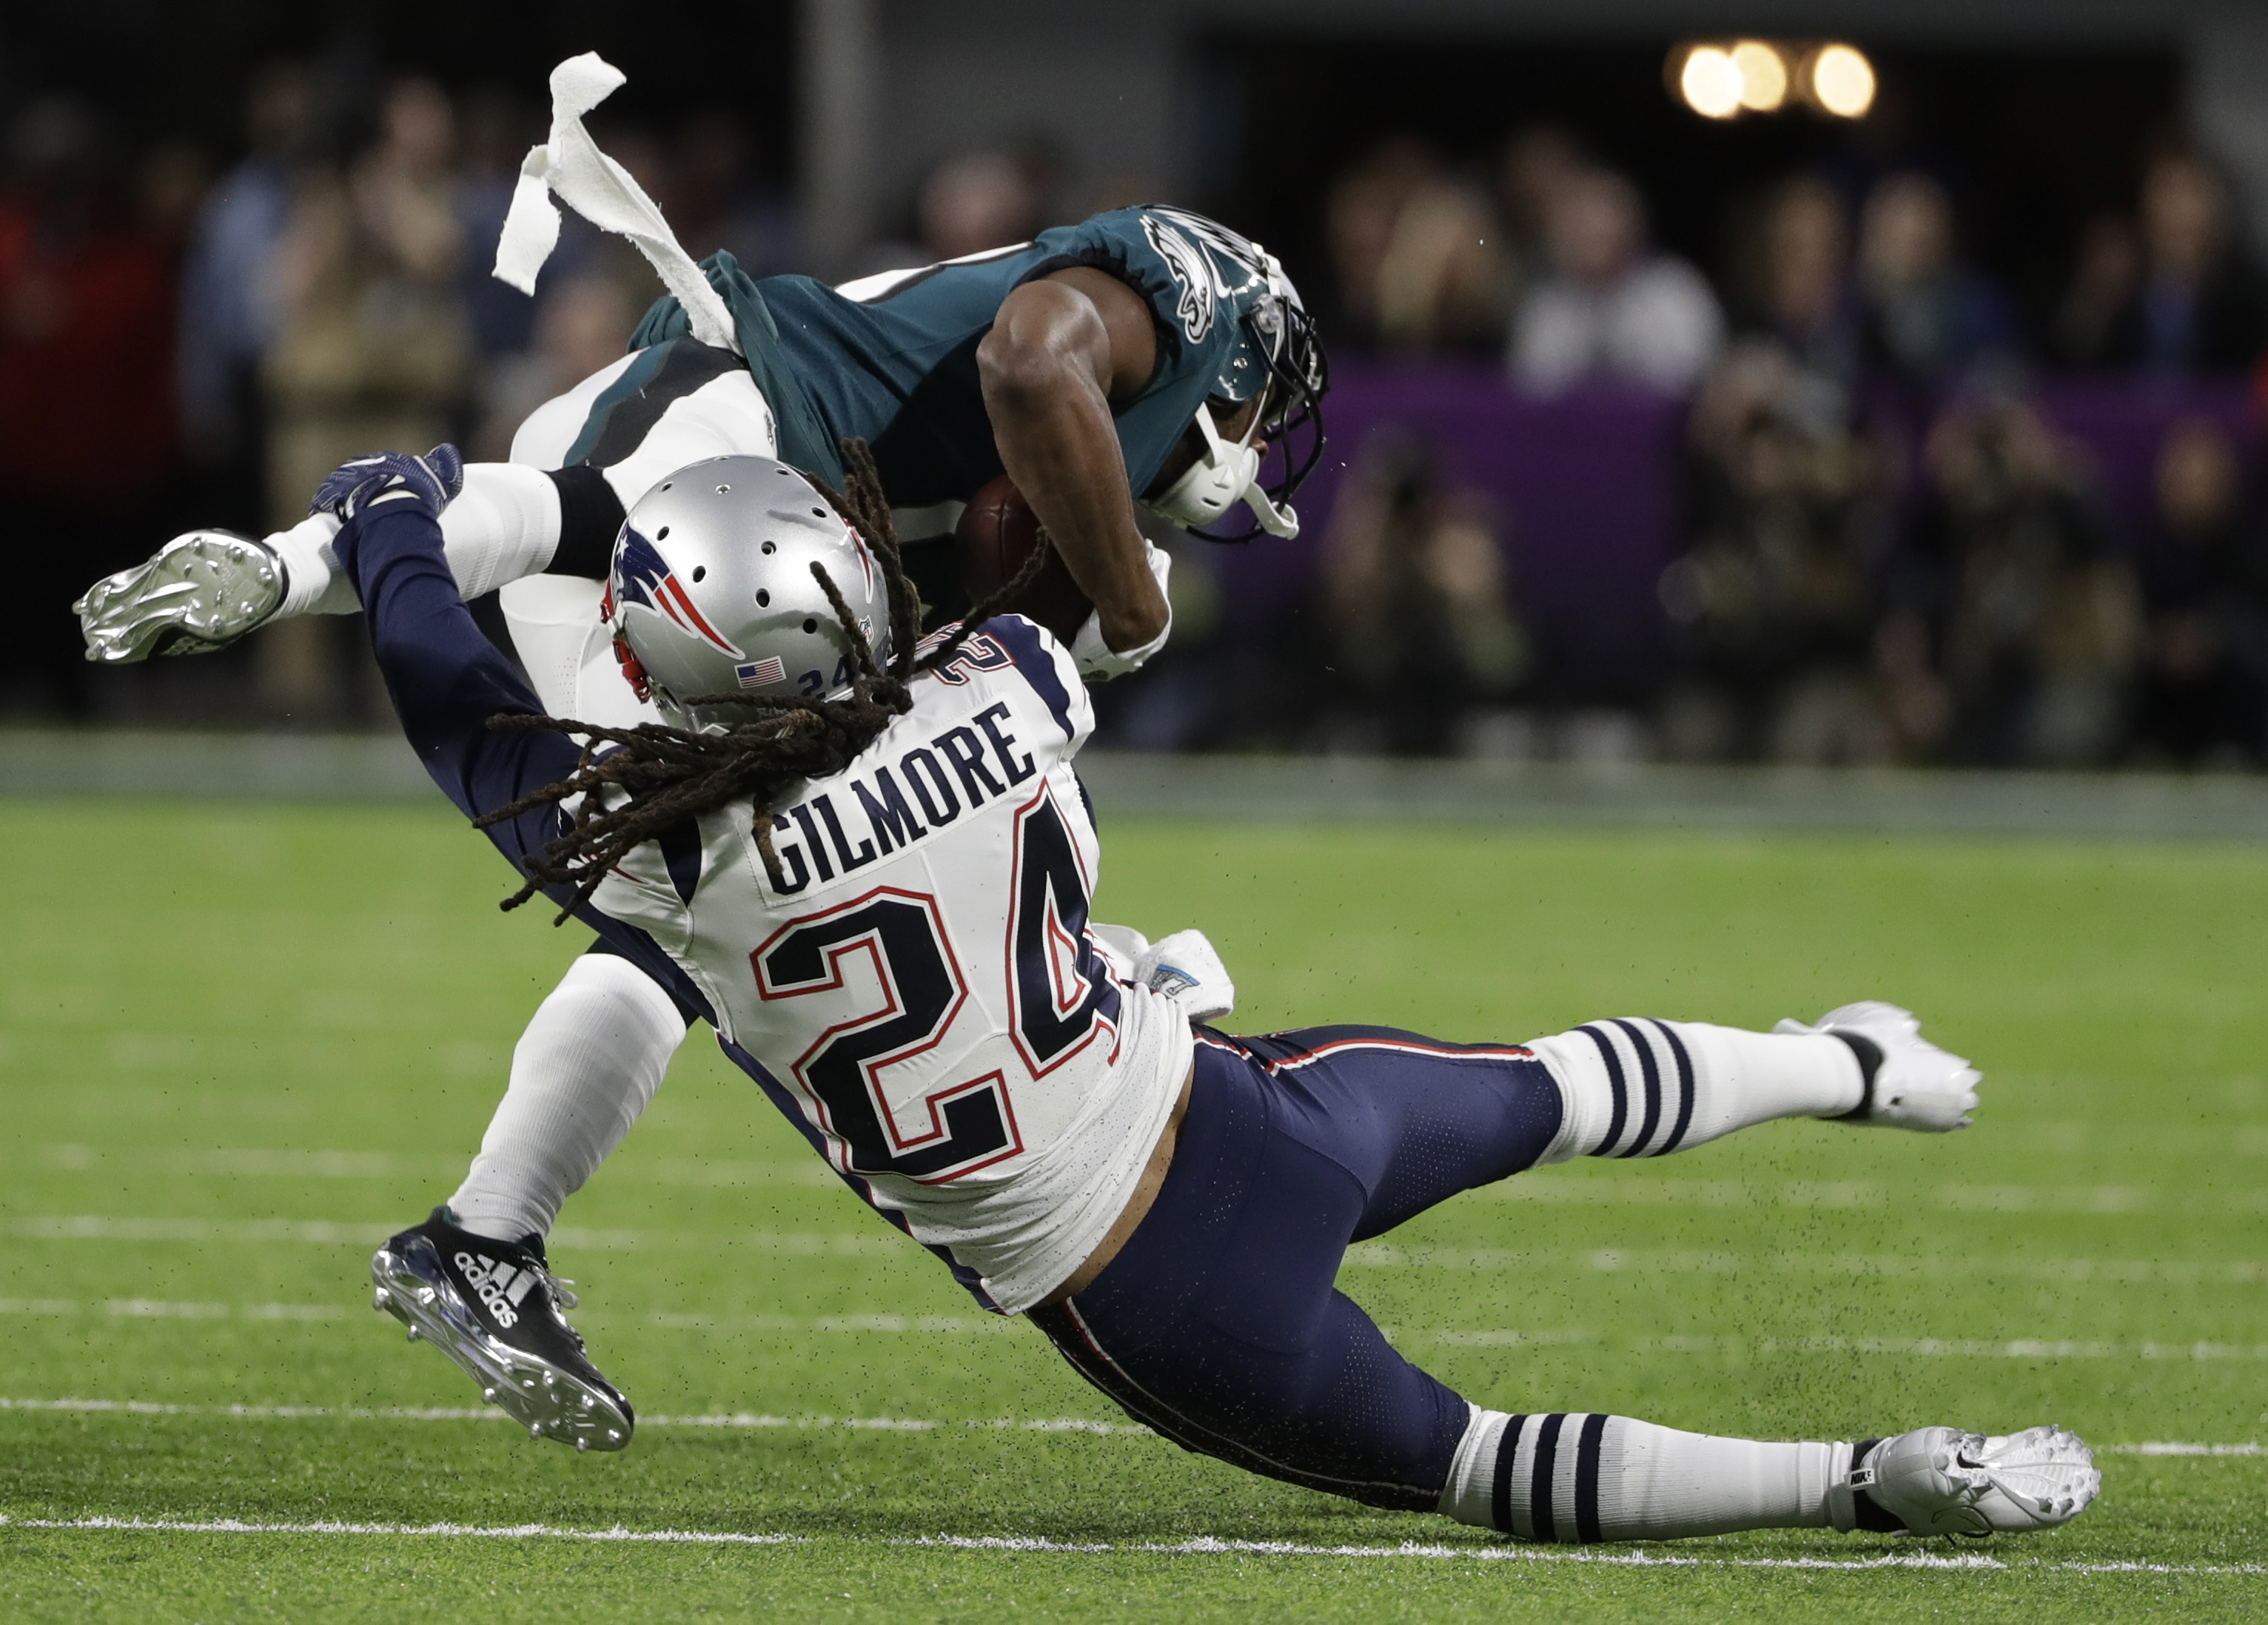 "<div class=""meta image-caption""><div class=""origin-logo origin-image ap""><span>AP</span></div><span class=""caption-text"">New England Patriots cornerback Stephon Gilmore (24), tackles Philadelphia Eagles wide receiver Nelson Agholor (13), during the first half. (AP Photo/Chris O'Meara)</span></div>"